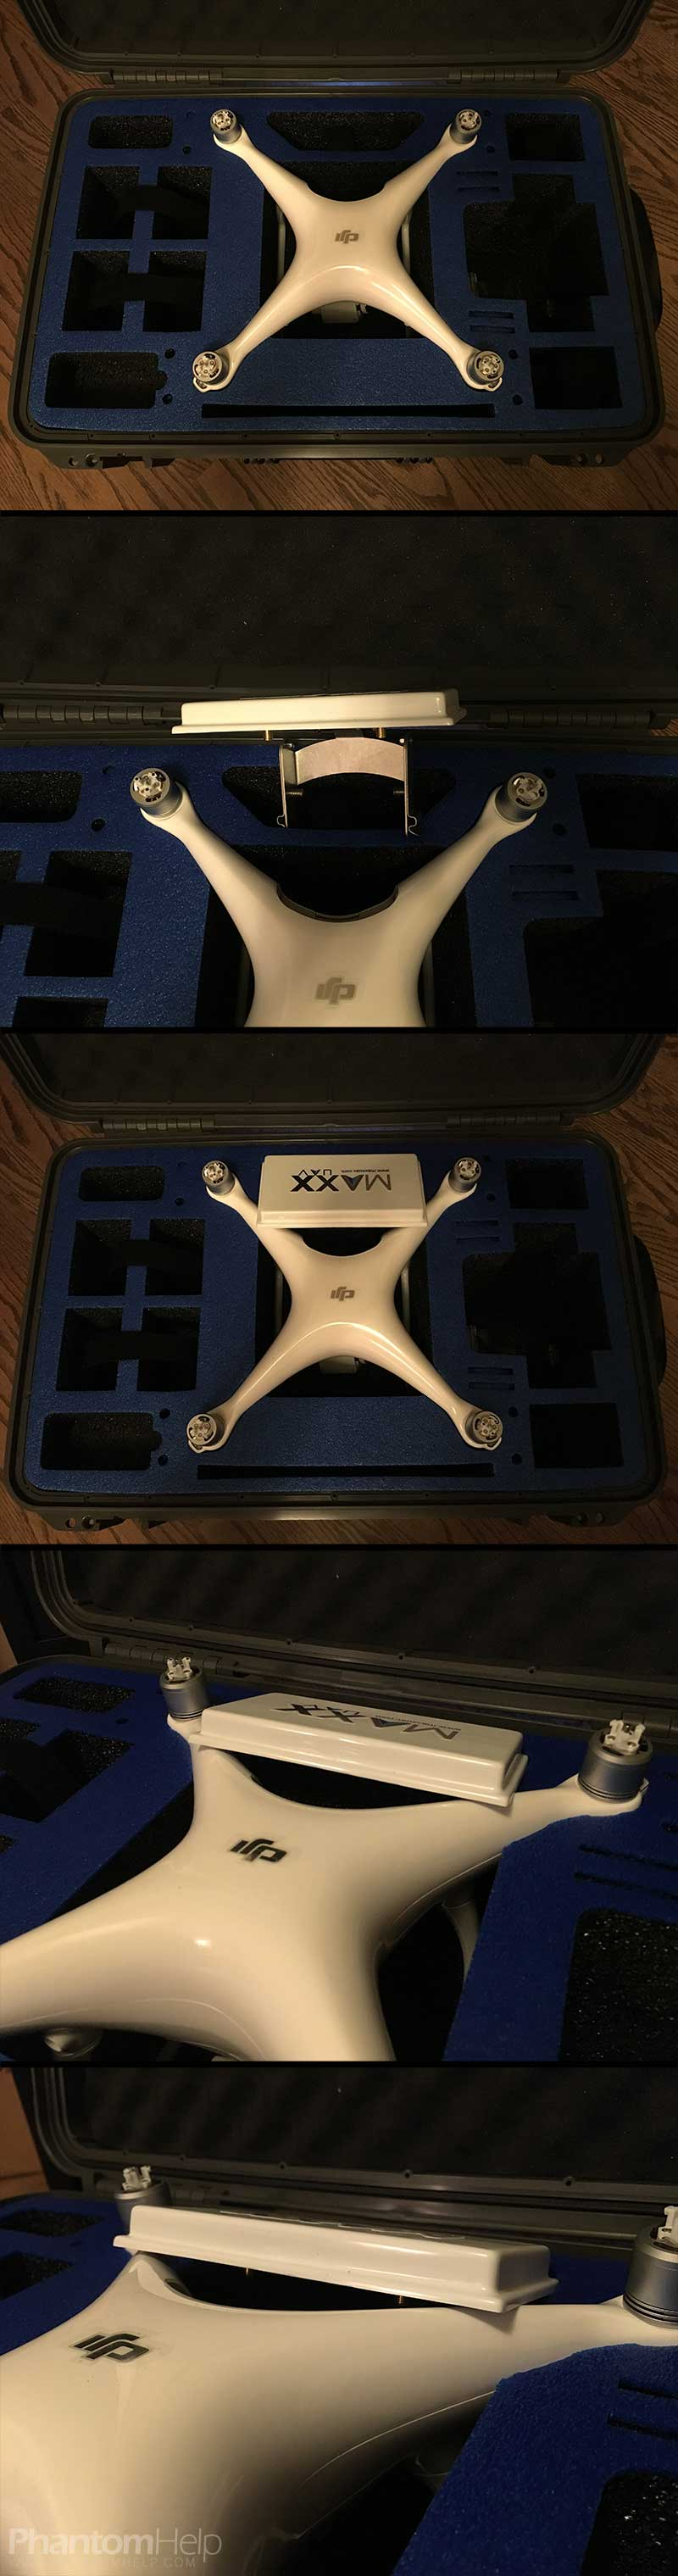 Microraptor-Case-With-MaxxUAV.jpg